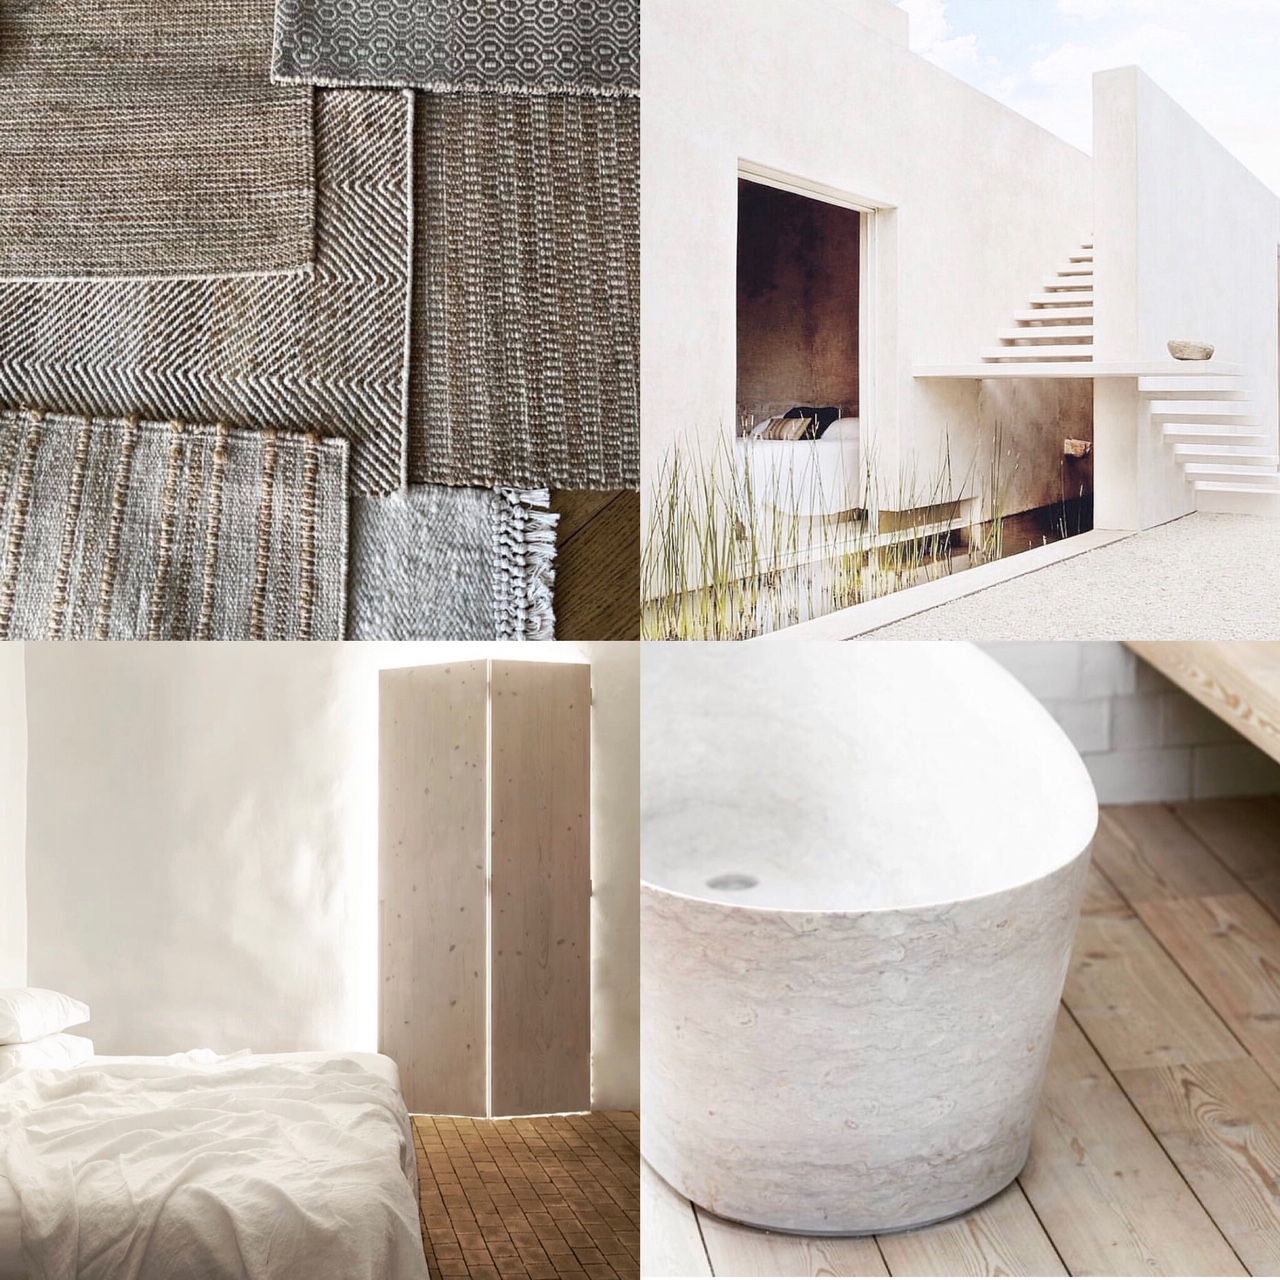 Mood board inspired by the use of light, soft colours and beautiful natural materials. Coral & Hive natural hemp, jute and karakul wool rugs. Casa Agave, Award winning design by Reyes Rios+Larrain Studio. Hotel Santa Clara 1728 by Aires Mateus. Casa no Tempo - Silent Living.